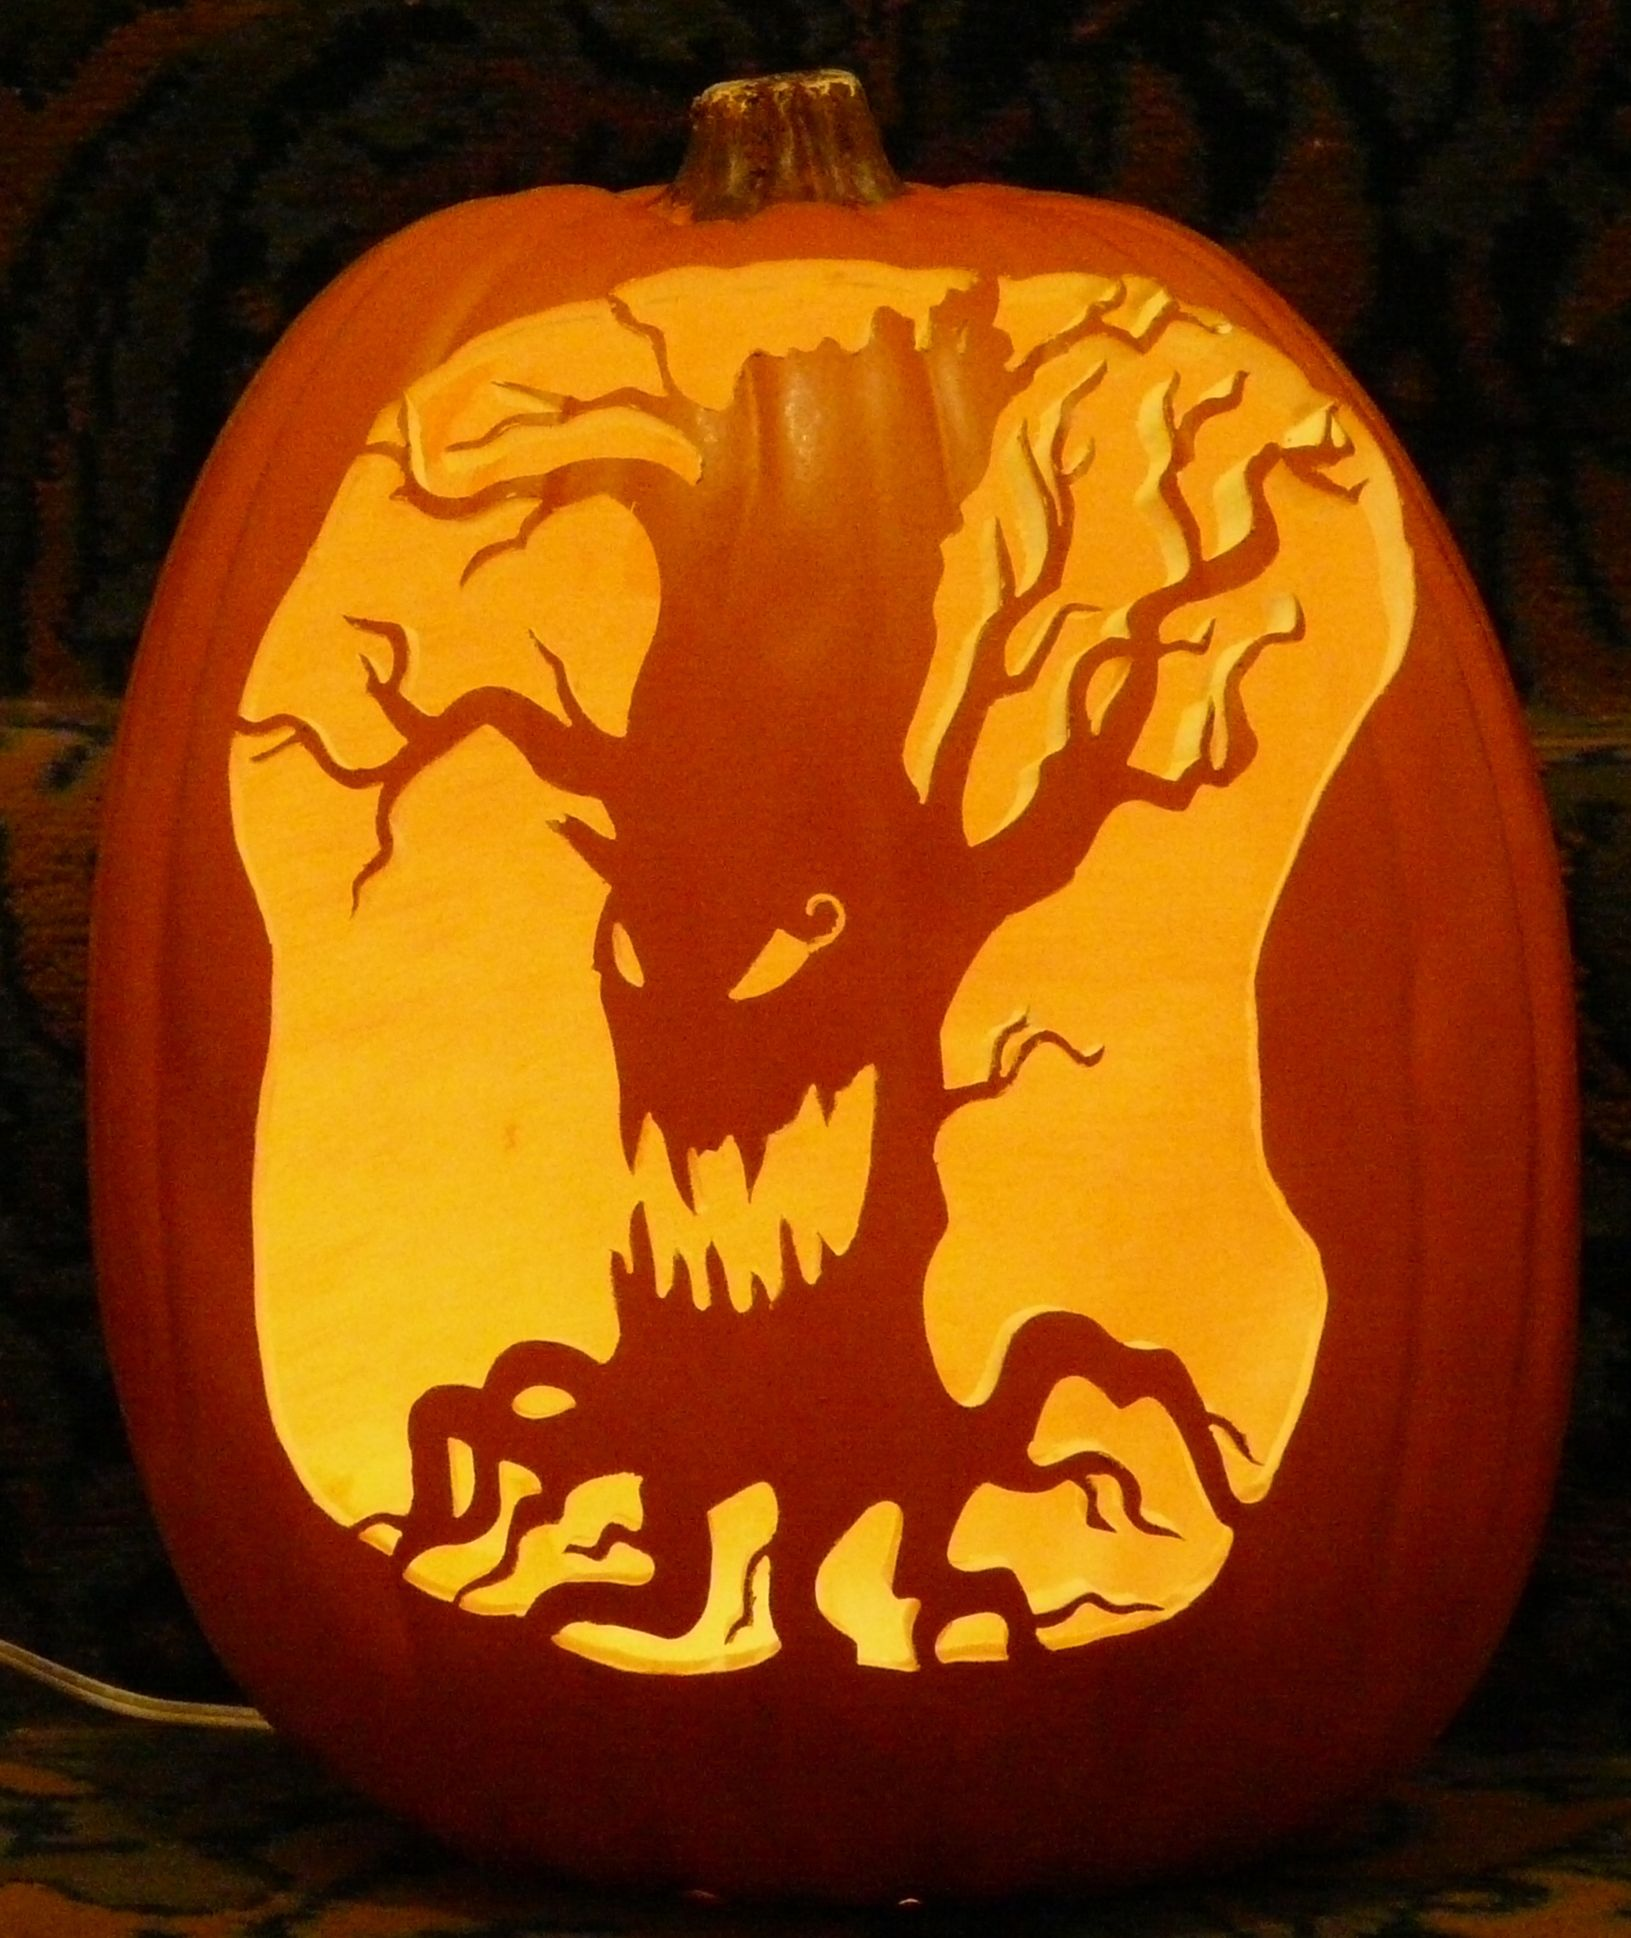 Haunter Pumpkin Carving Ideas 2019 Haunted Tree pattern I carved on a foam pumpkin. | Pumpkin